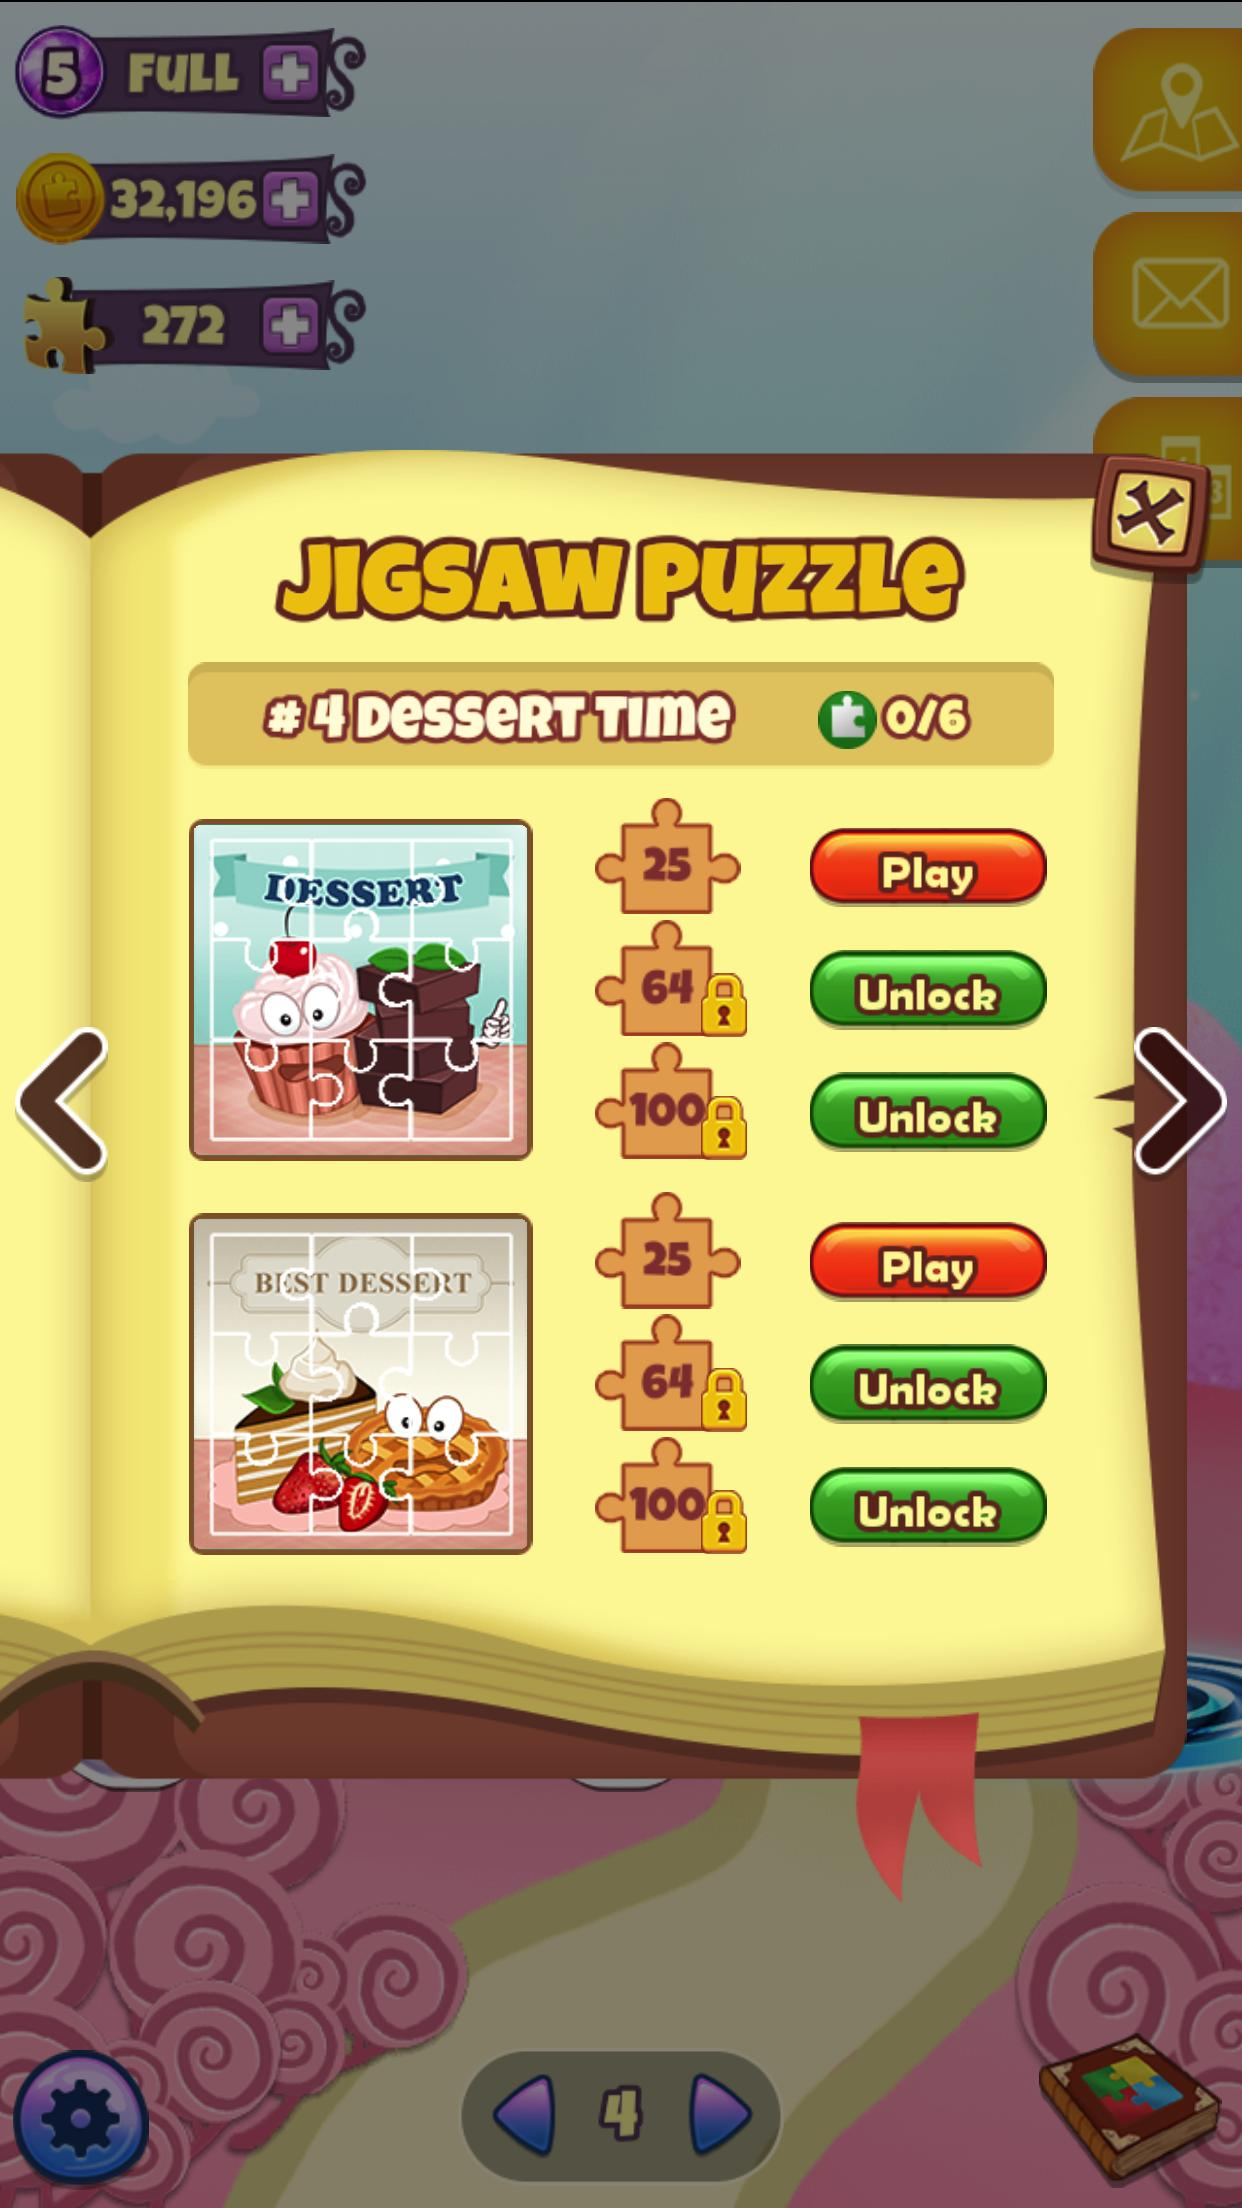 The Mystic Puzzland - Griddlers & Nonogram Puzzles 1.0.26 Screenshot 14